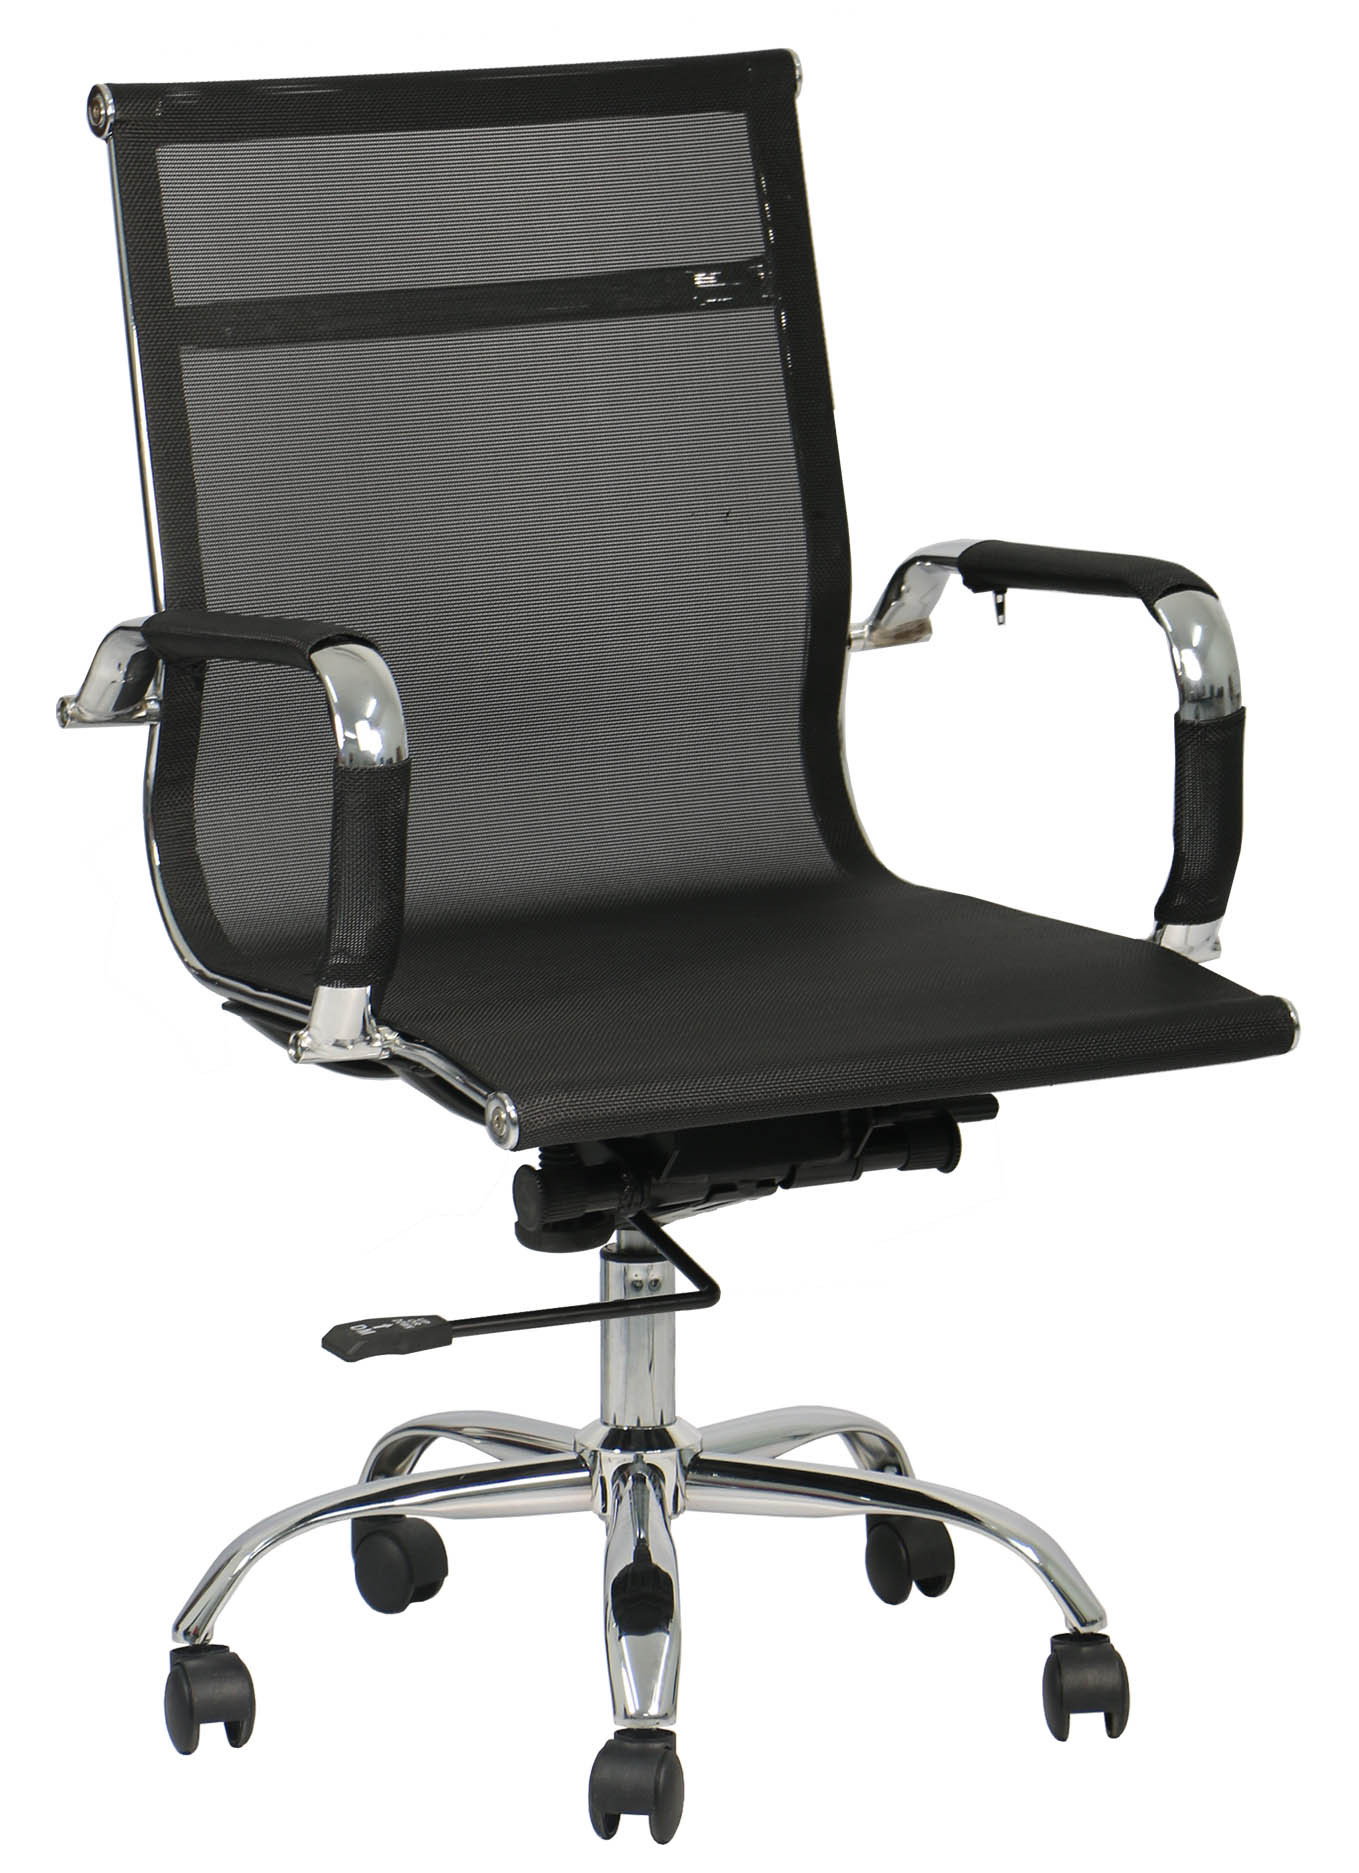 eames office chair replica media room chairs mesh furniture home decor fortytwo